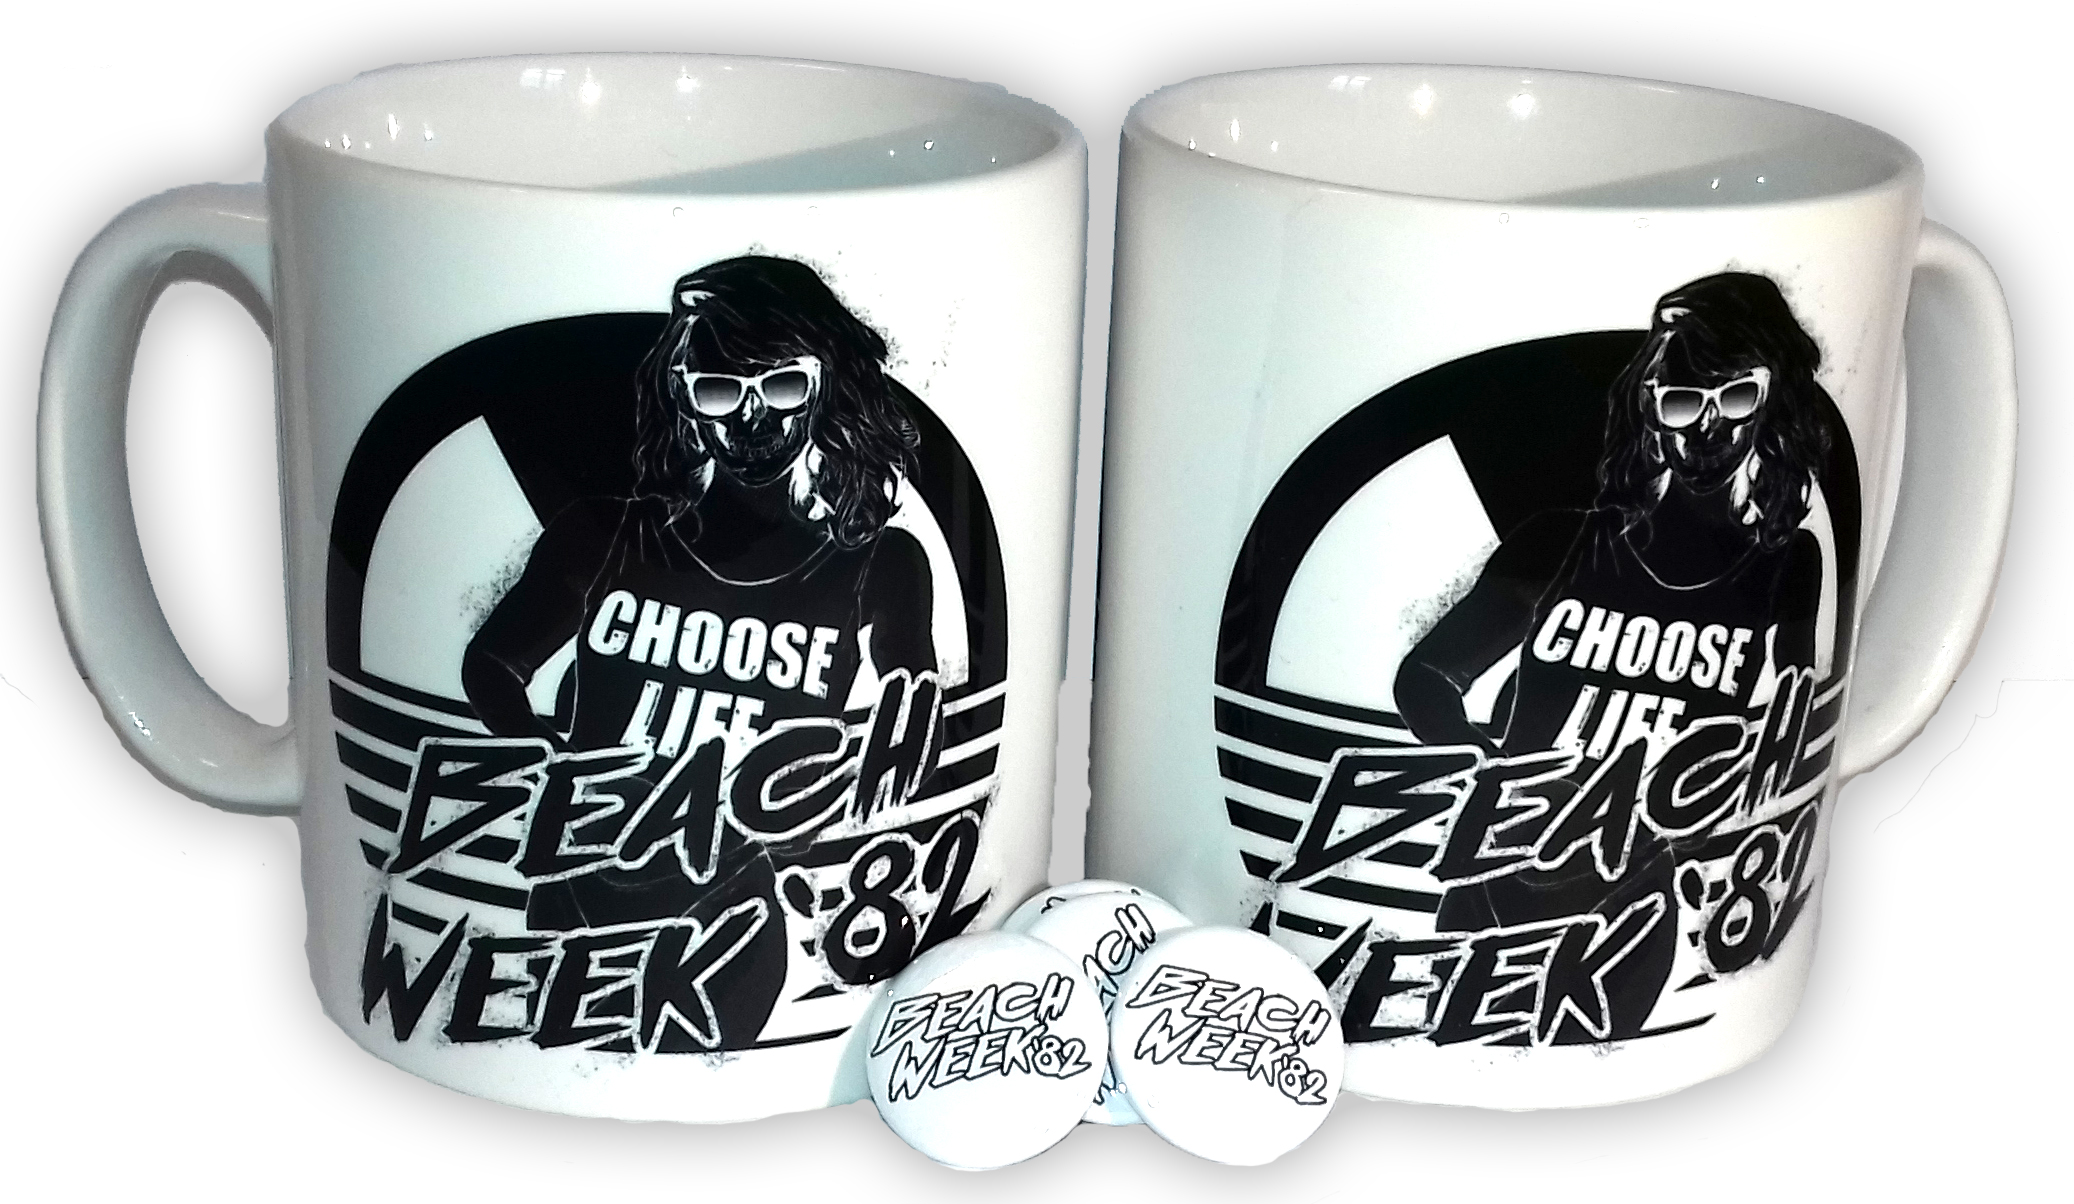 Personalised Printed Tea & Coffee Mugs And Badges - Beach Week '82